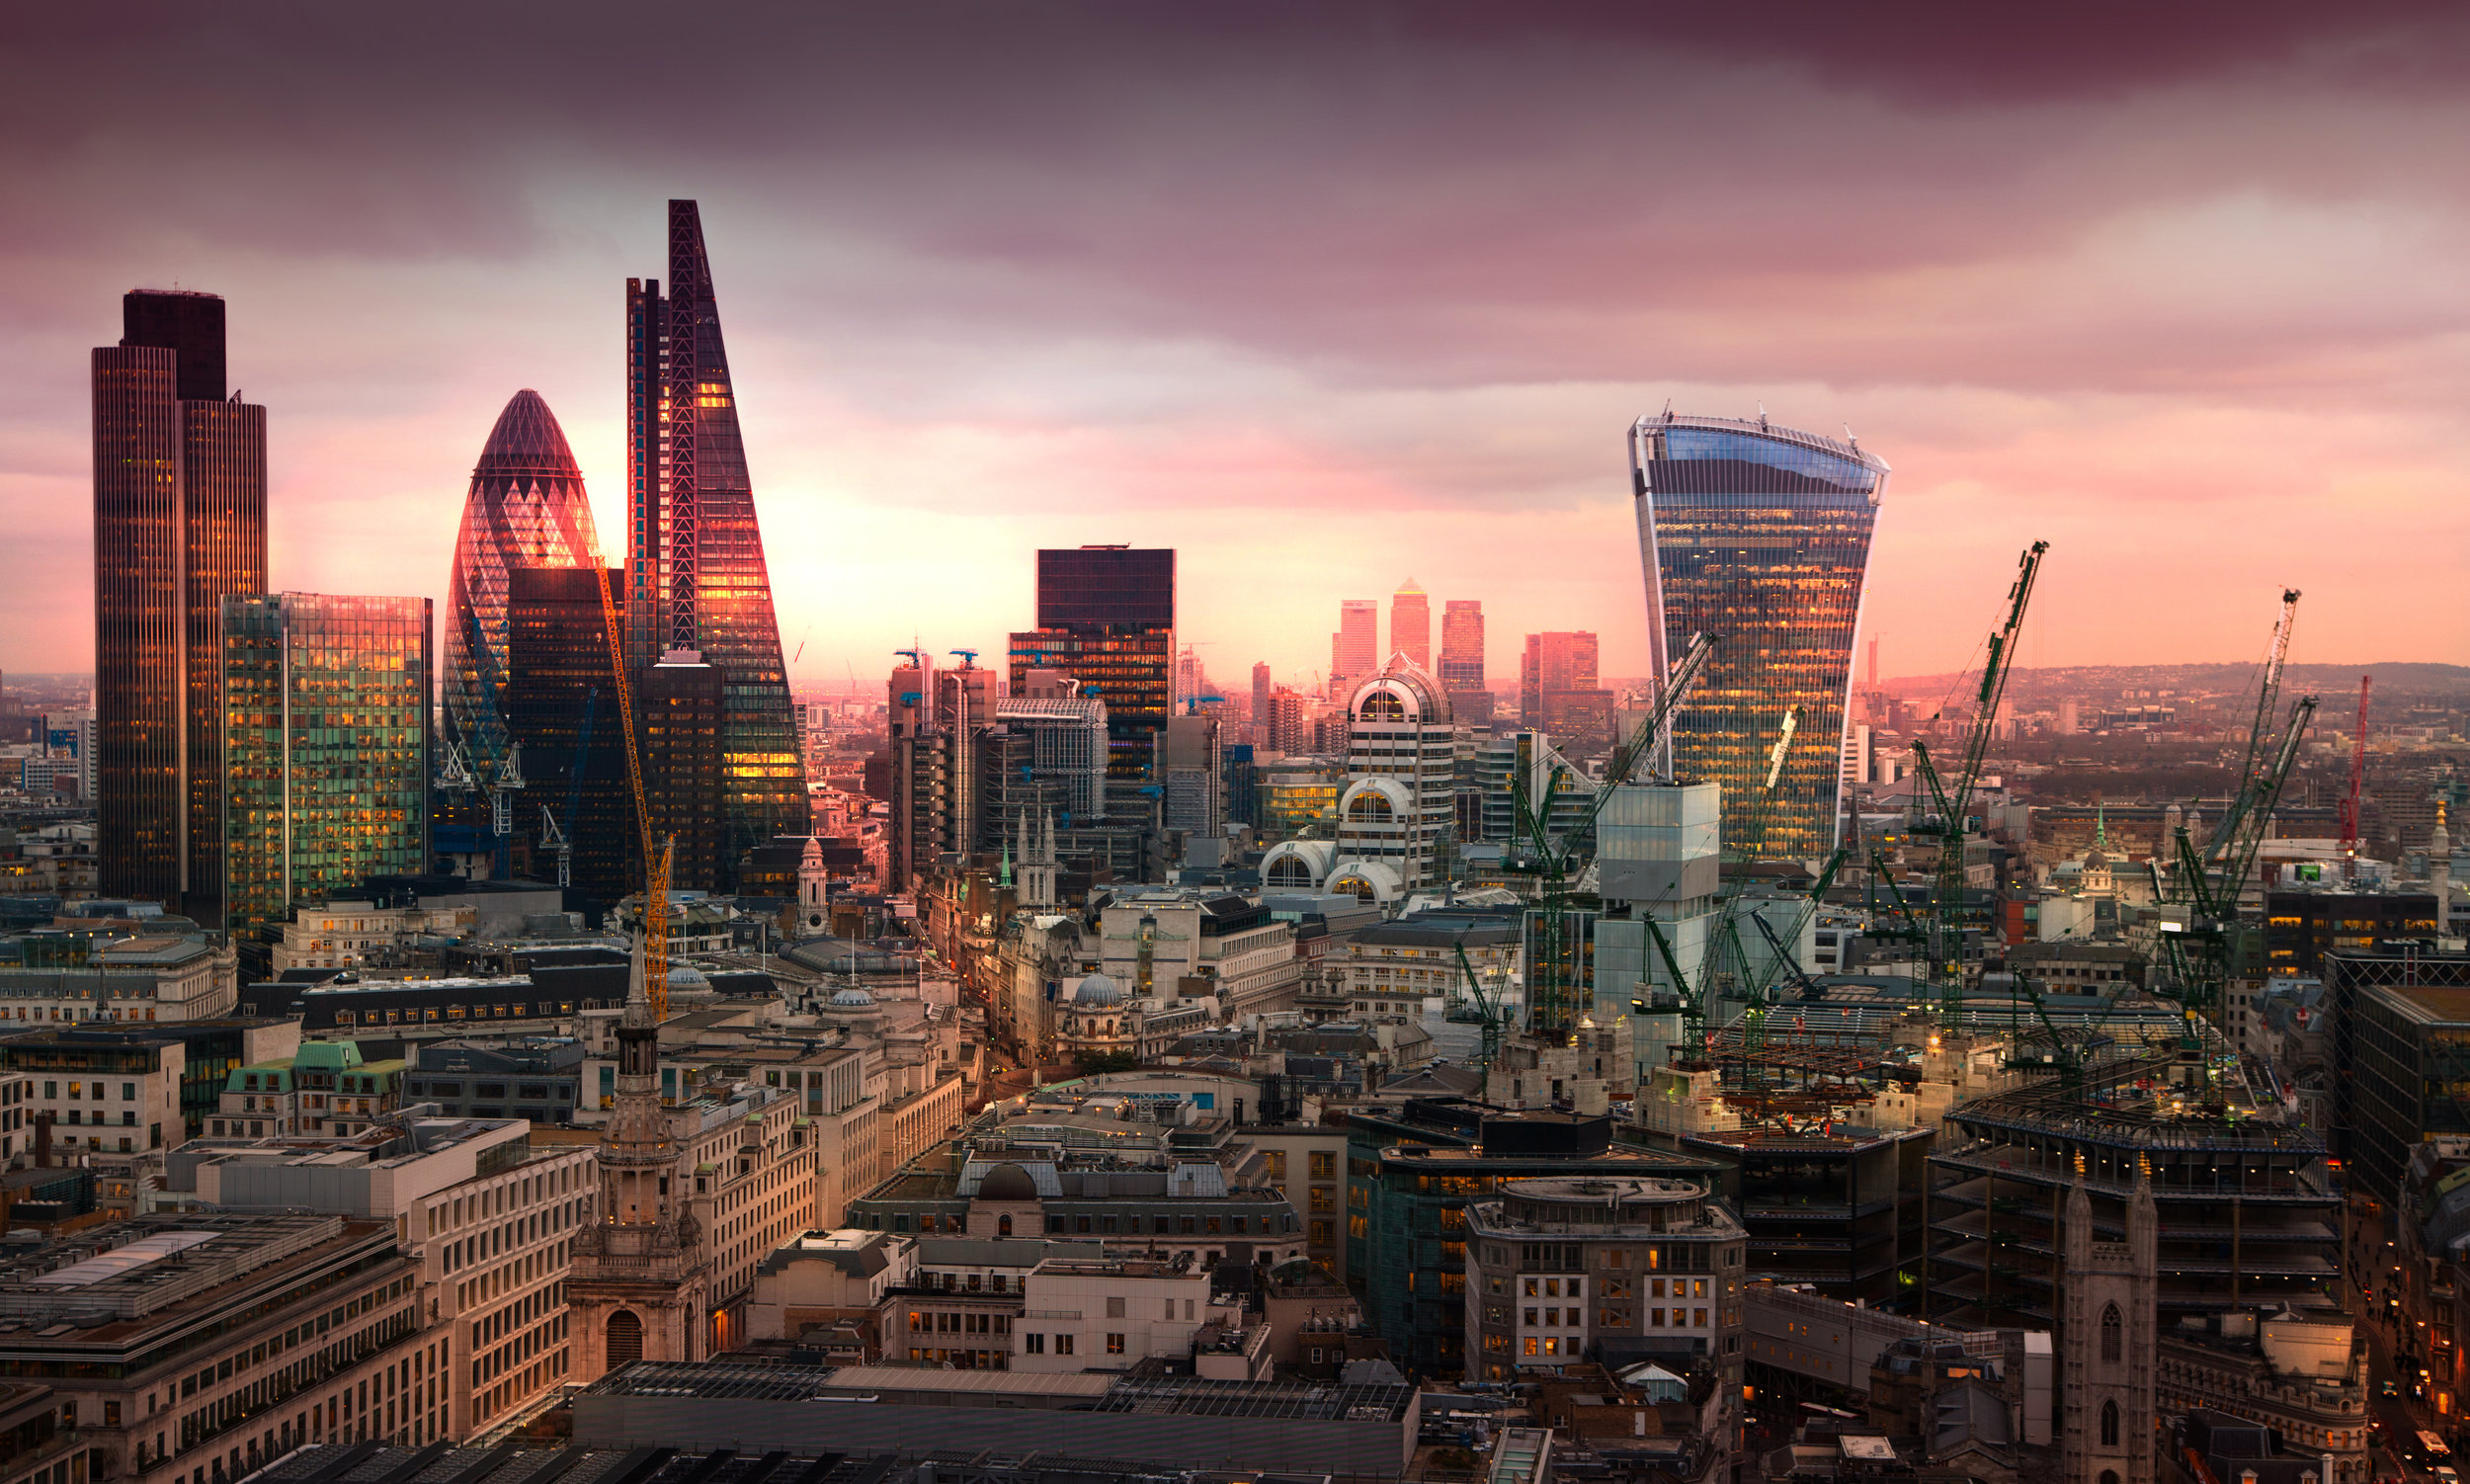 London skyline SUnset.jpg